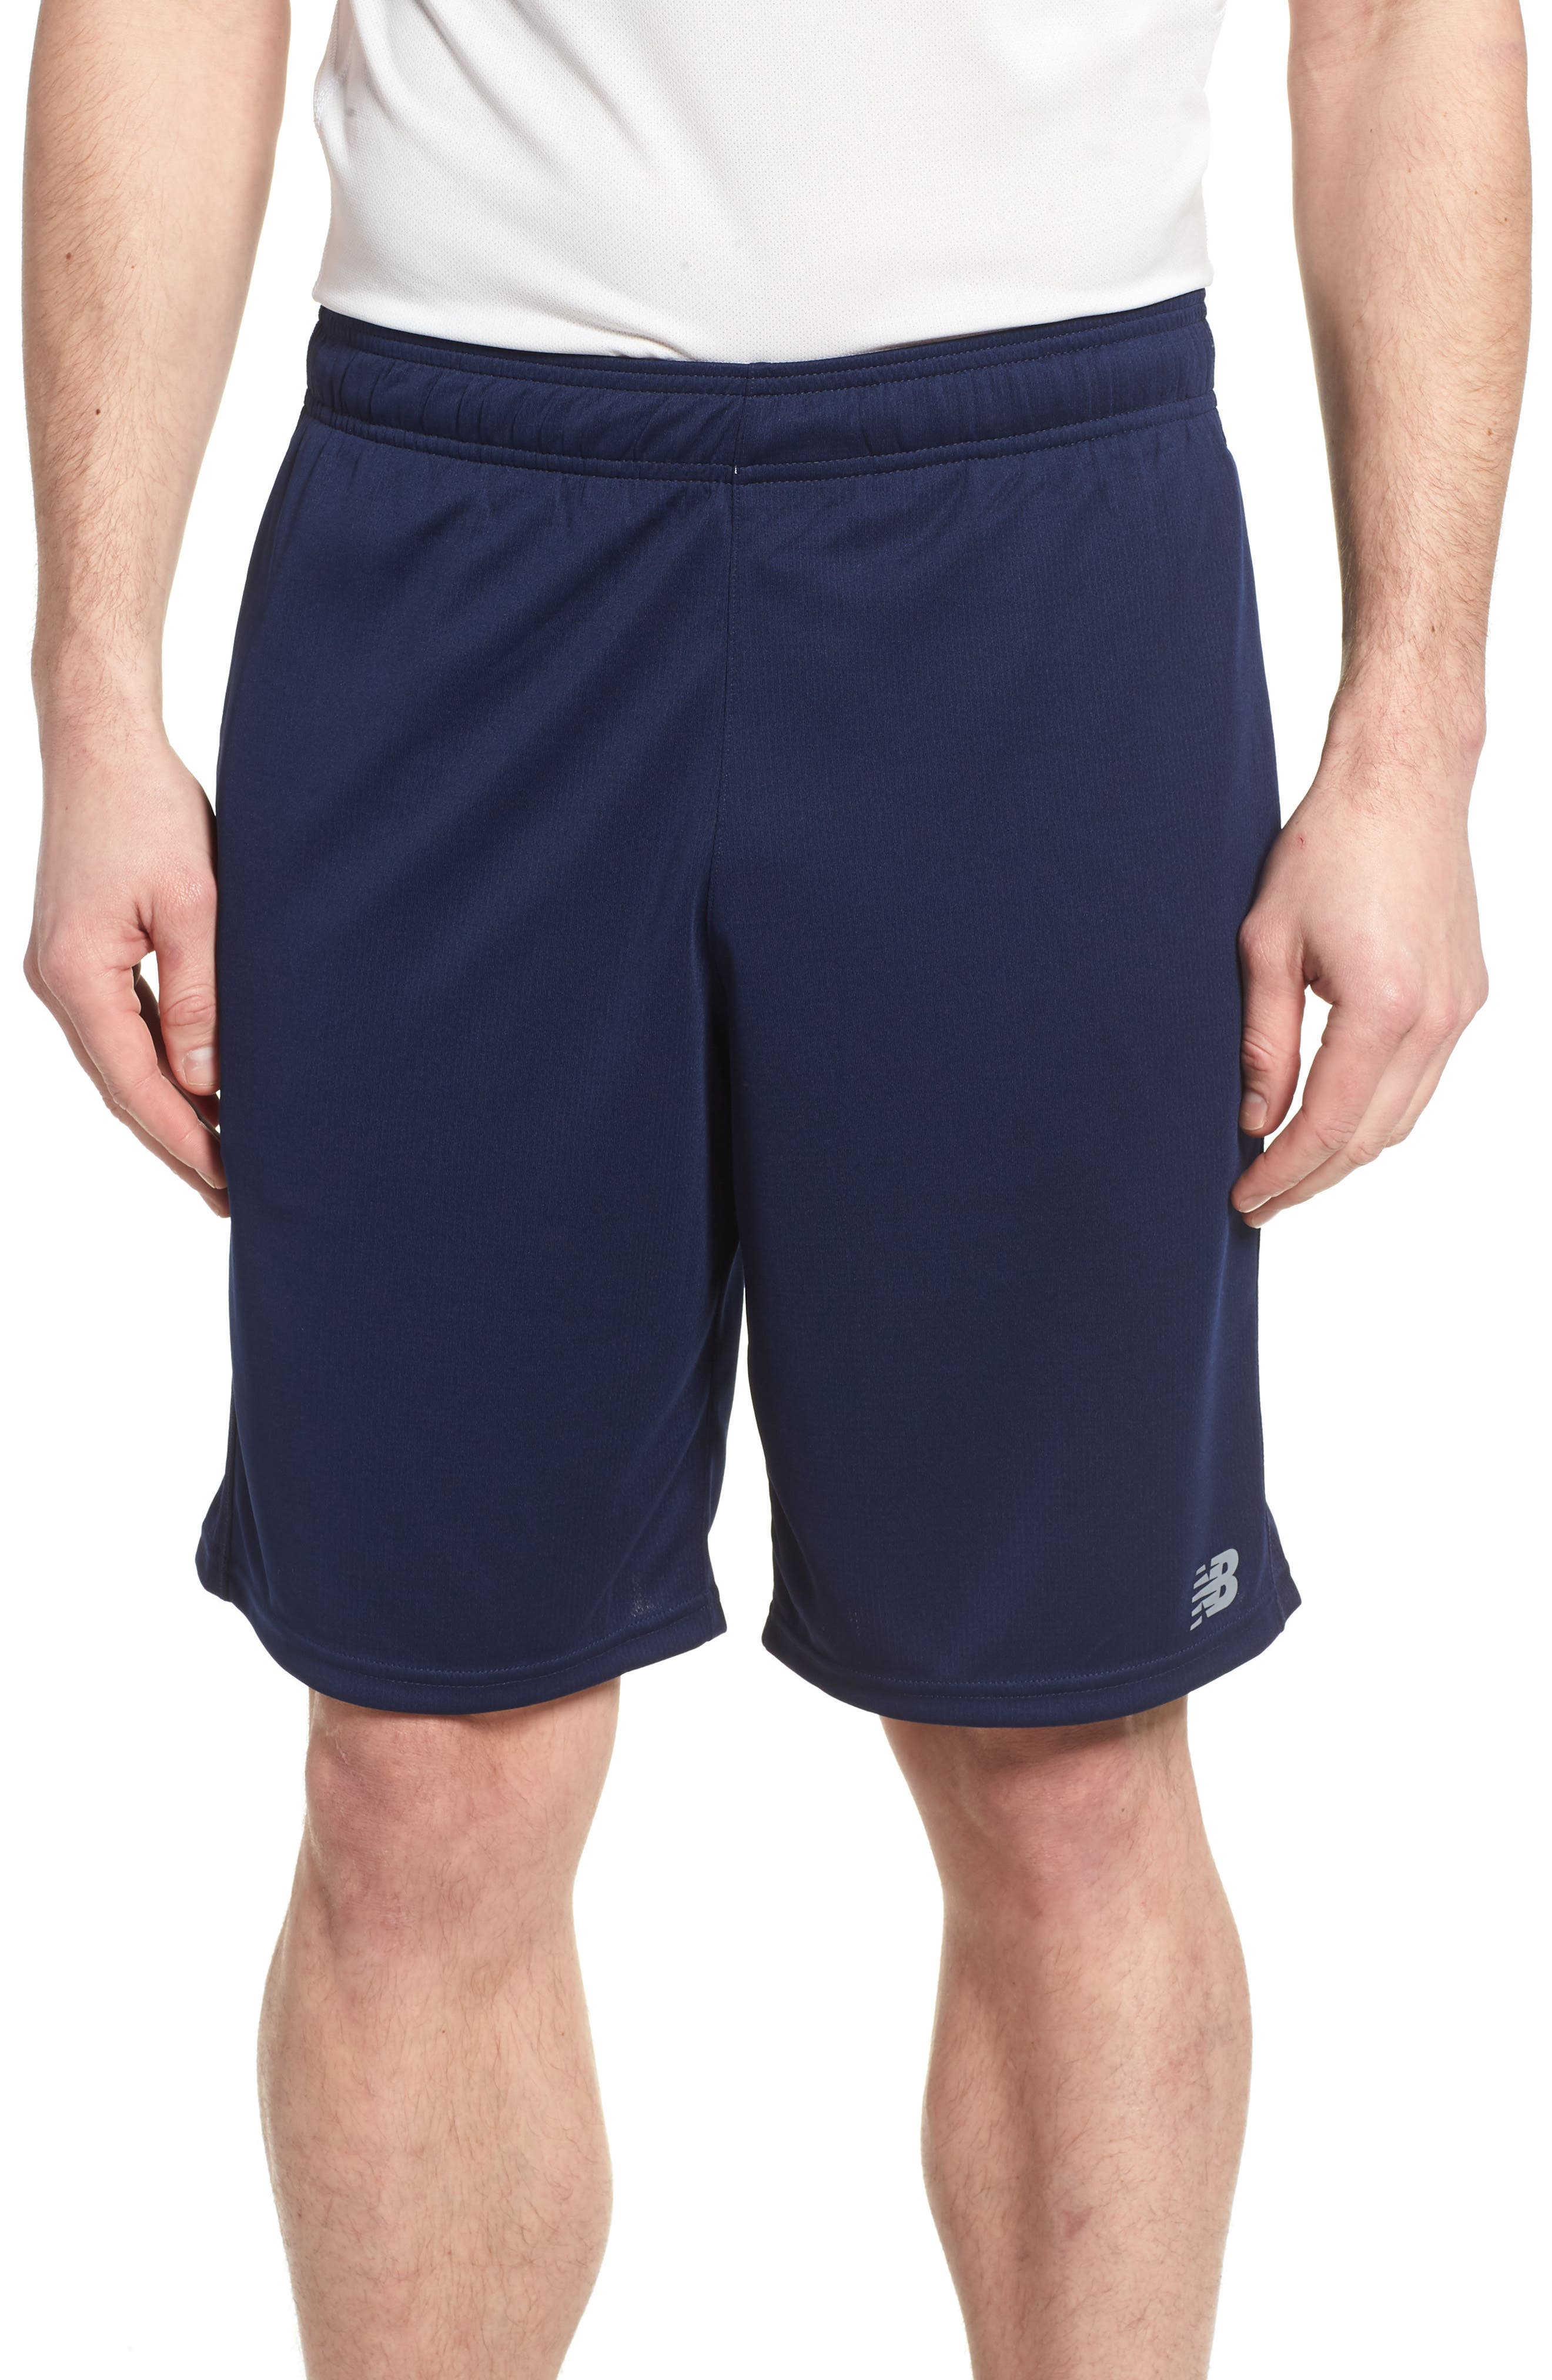 Versa Shorts,                         Main,                         color, PIGMENT